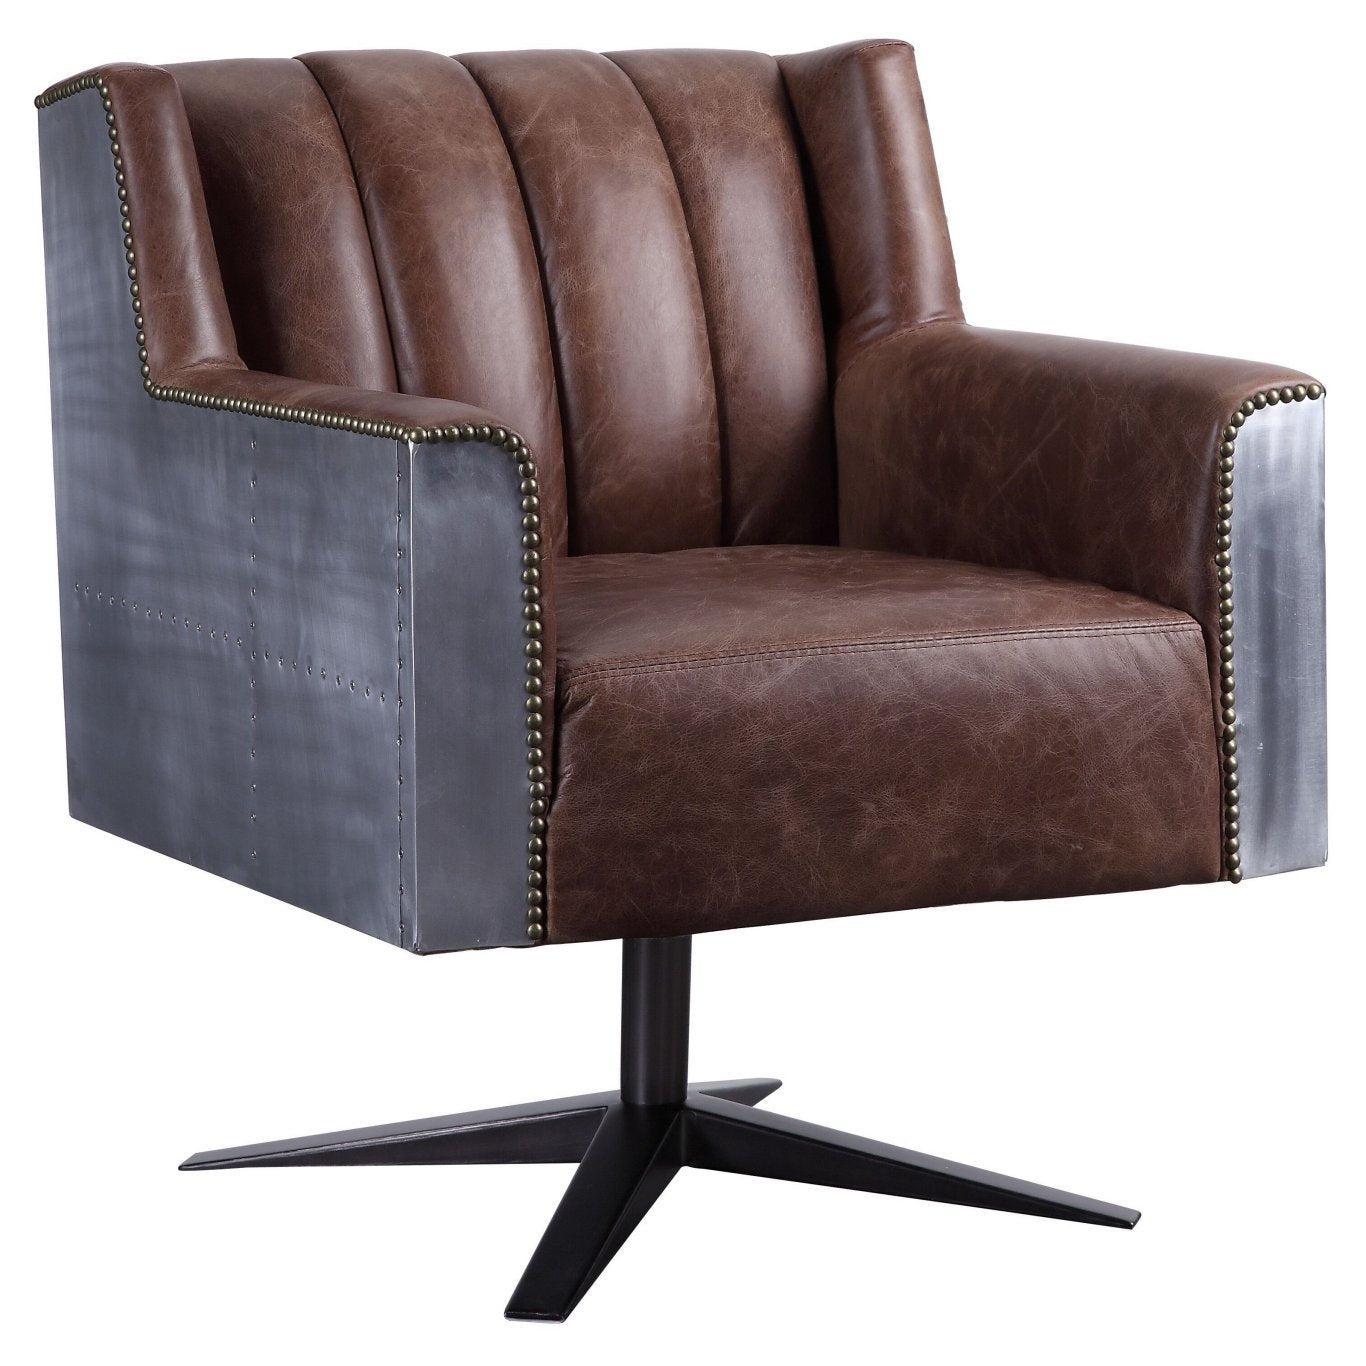 Acme 92553 Brancaster Brown Leather Finish Industrial Office Chair